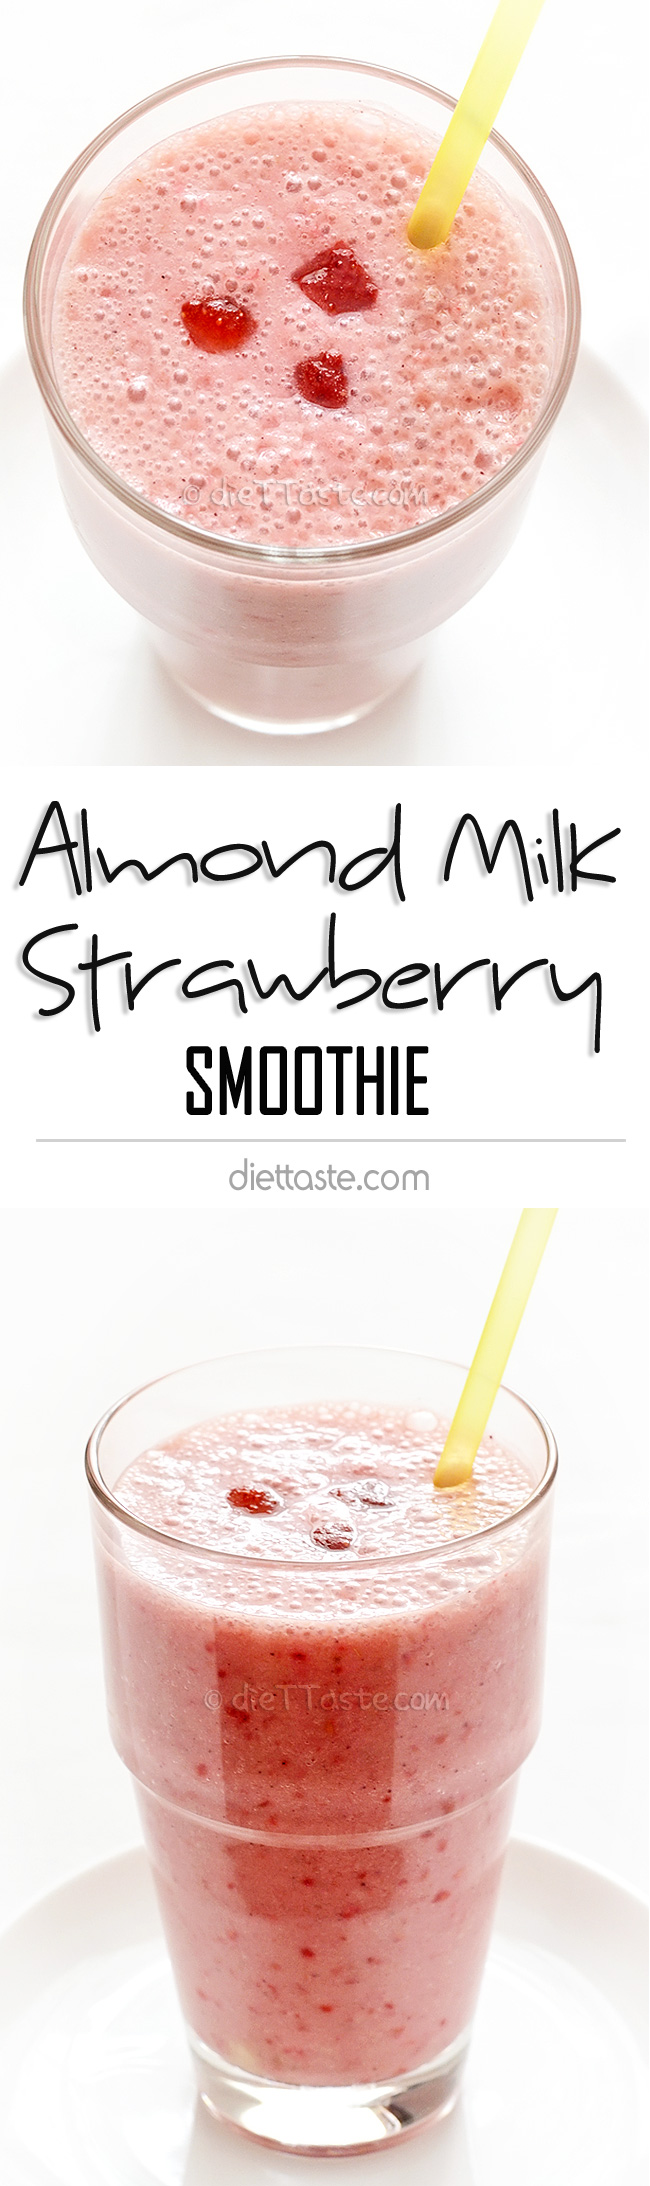 Almond Milk Strawberry Smoothie - diettaste.com